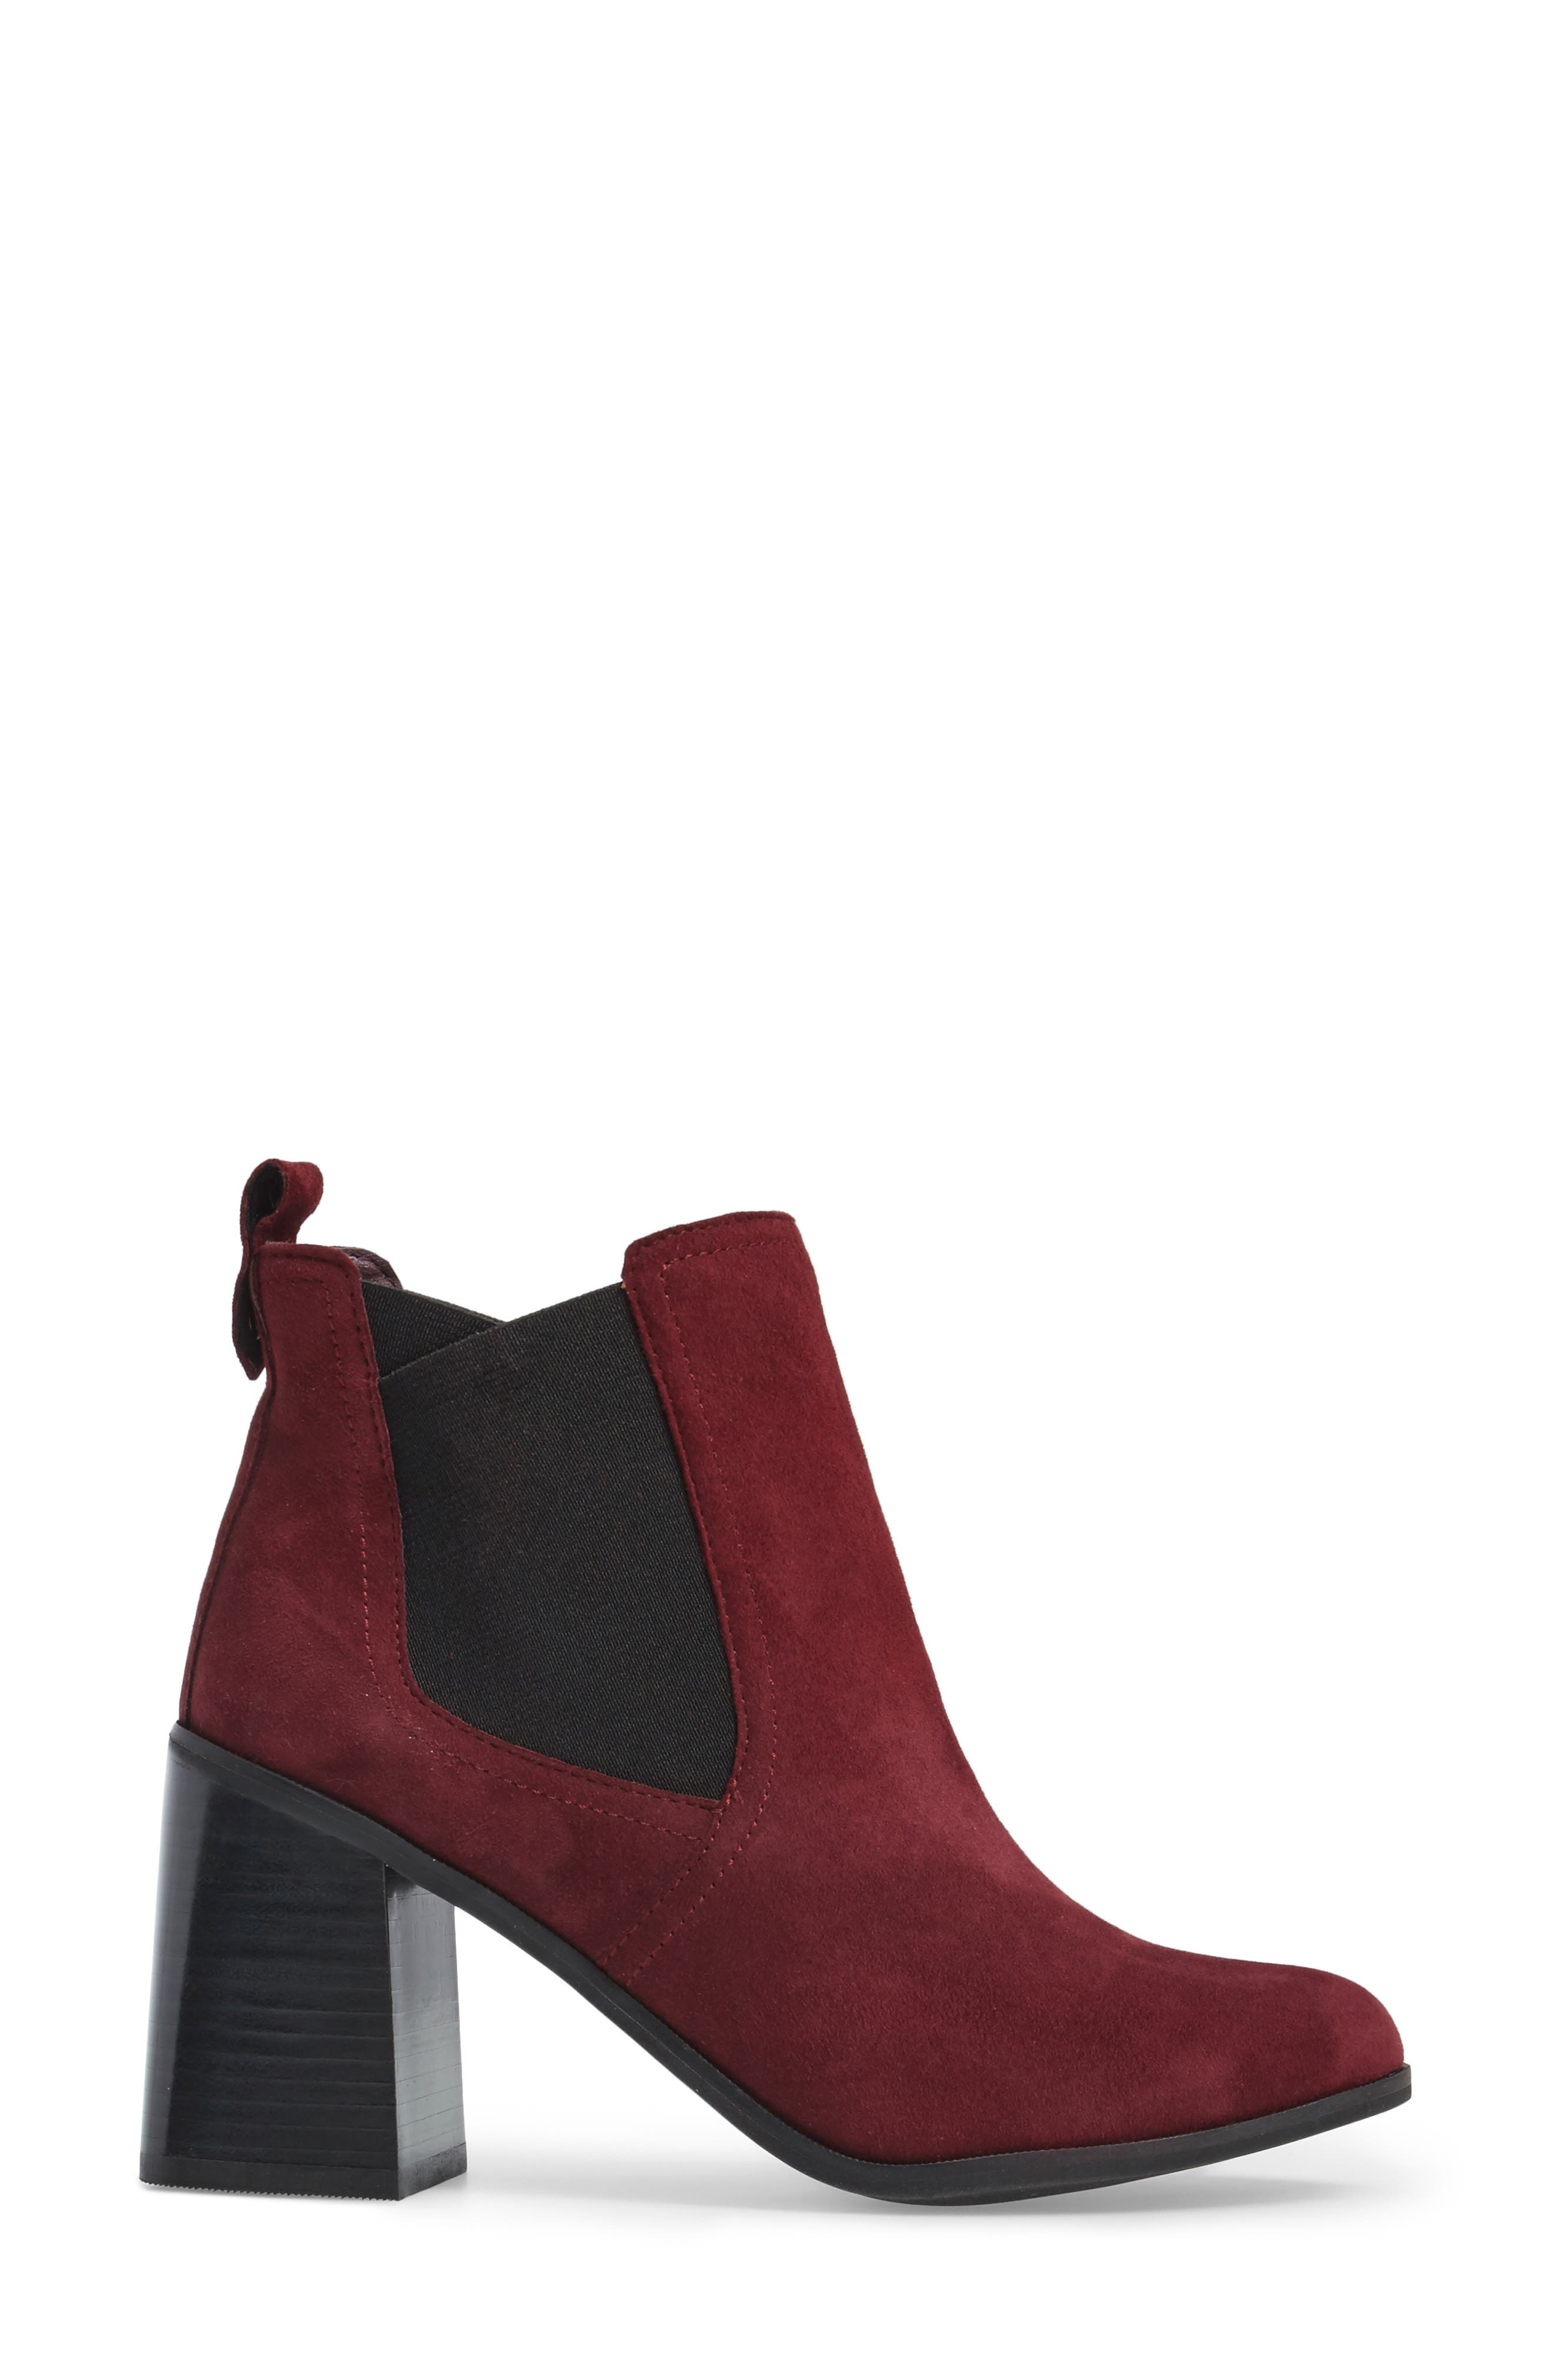 Quinn Flared Heel Chelsea Bootie,                             Alternate thumbnail 15, color,